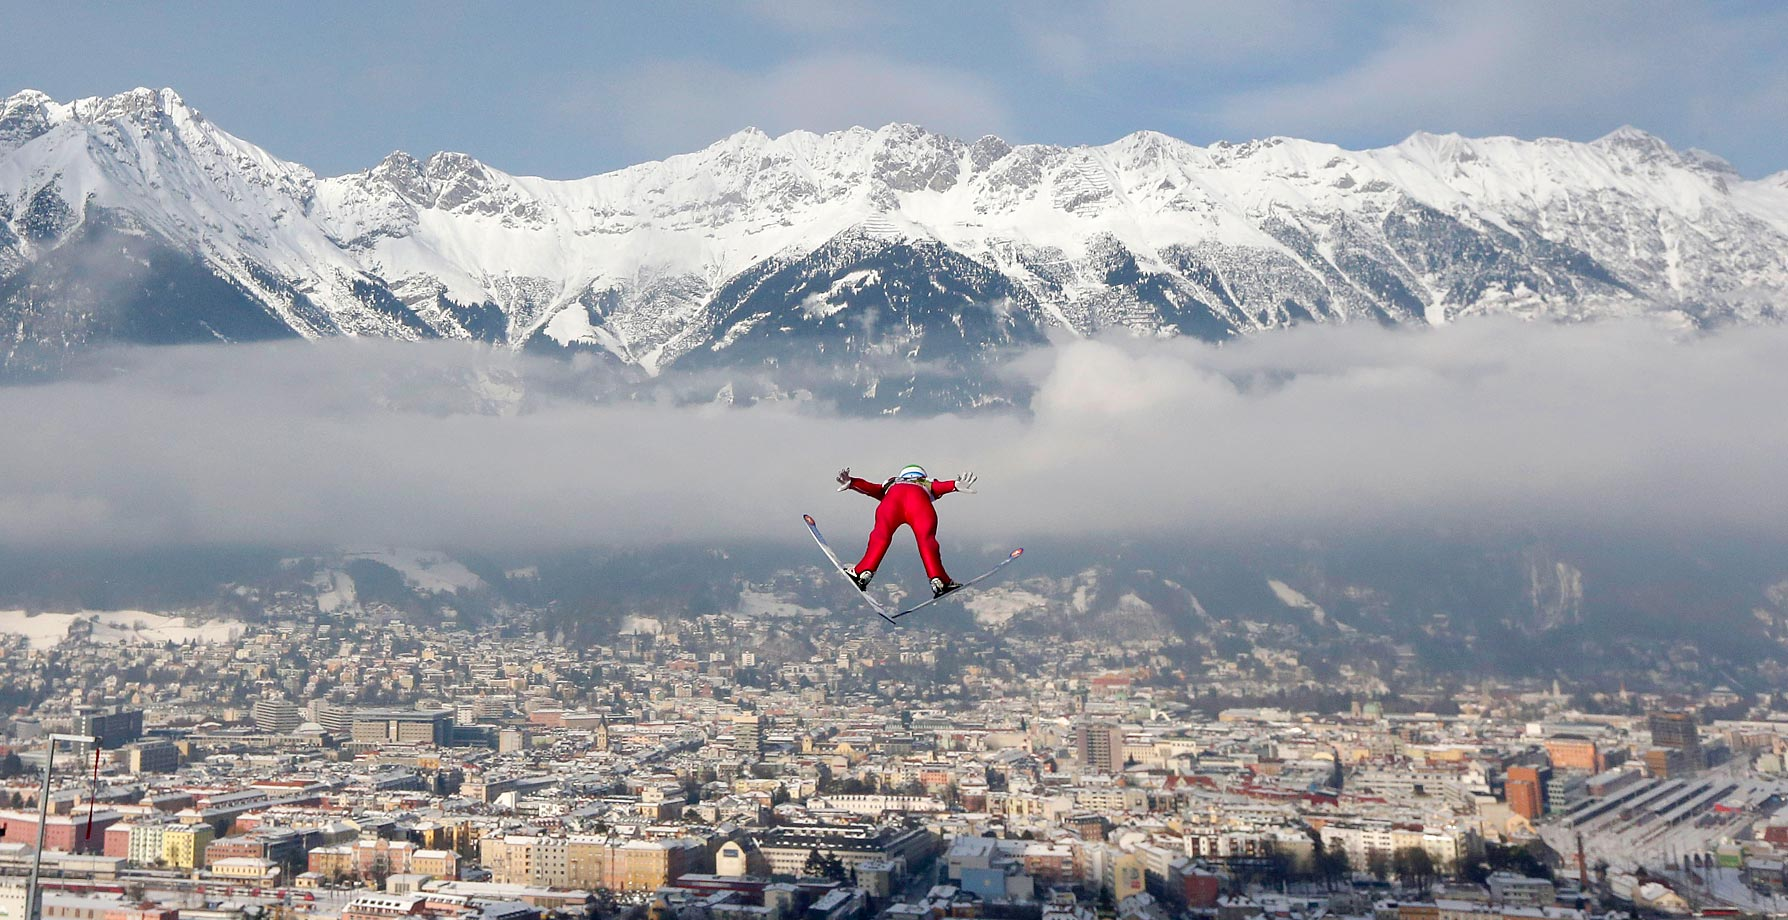 Norway's Anders†Jacobsen soars during the trial jump at the third stage of the four hills ski jumping tournament in Innsbruck, Austria.